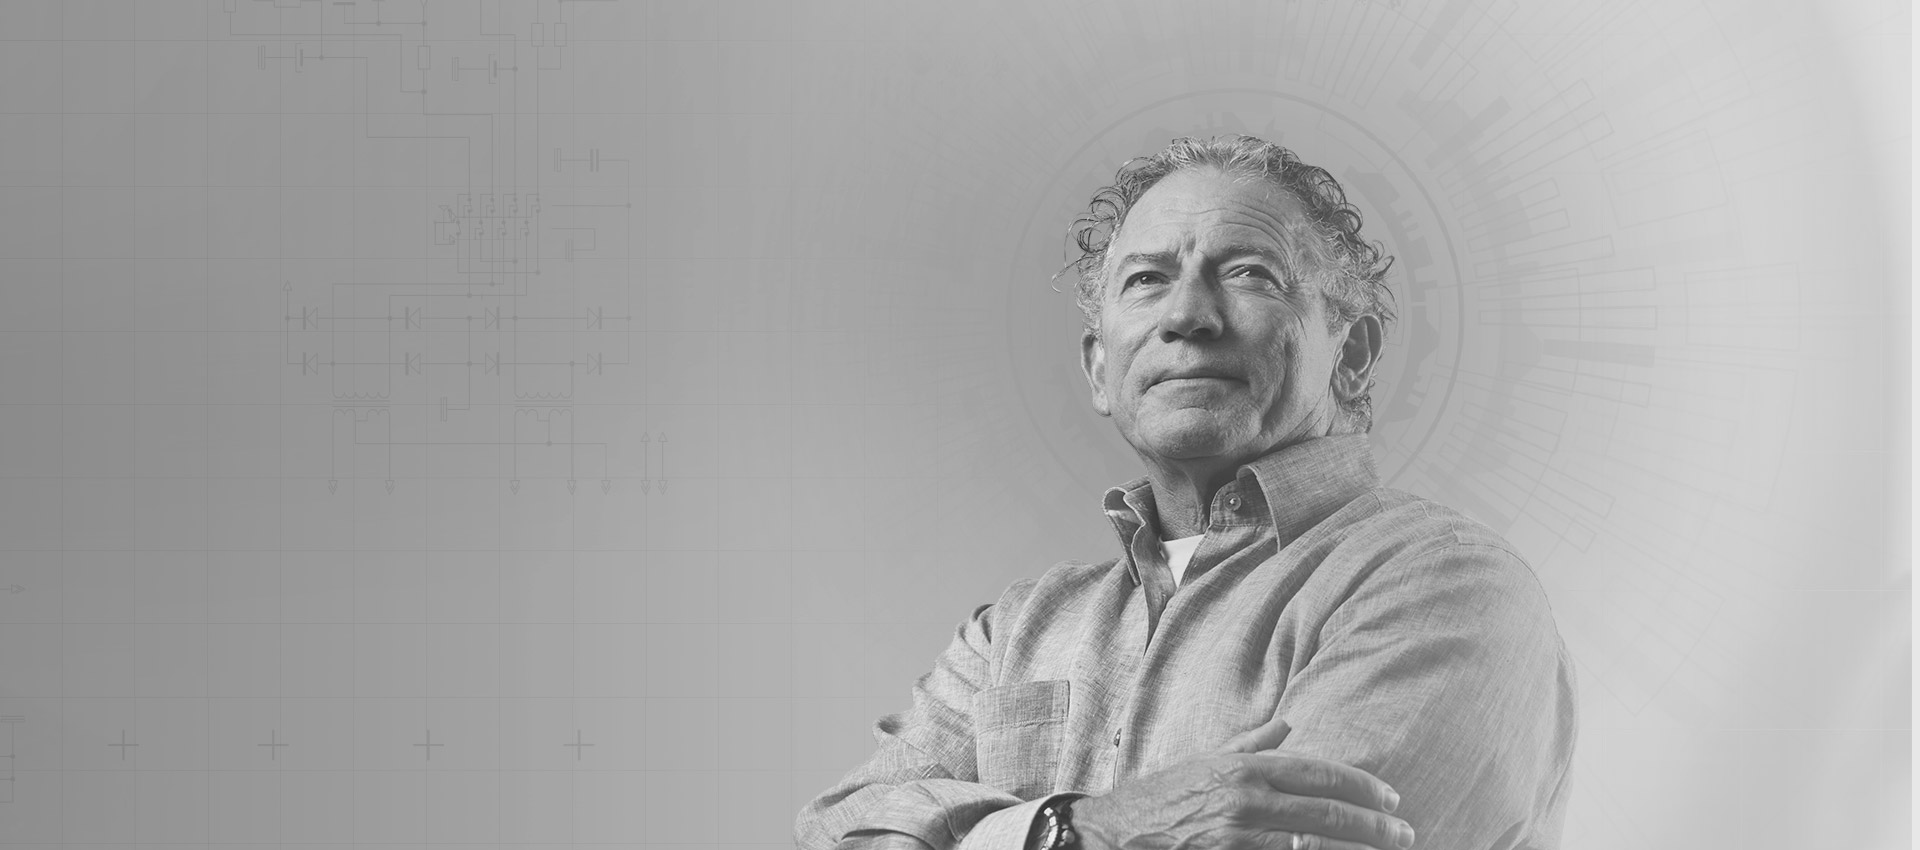 Tom Siebel's Digital Transformation Book Now Available for Pre-Order